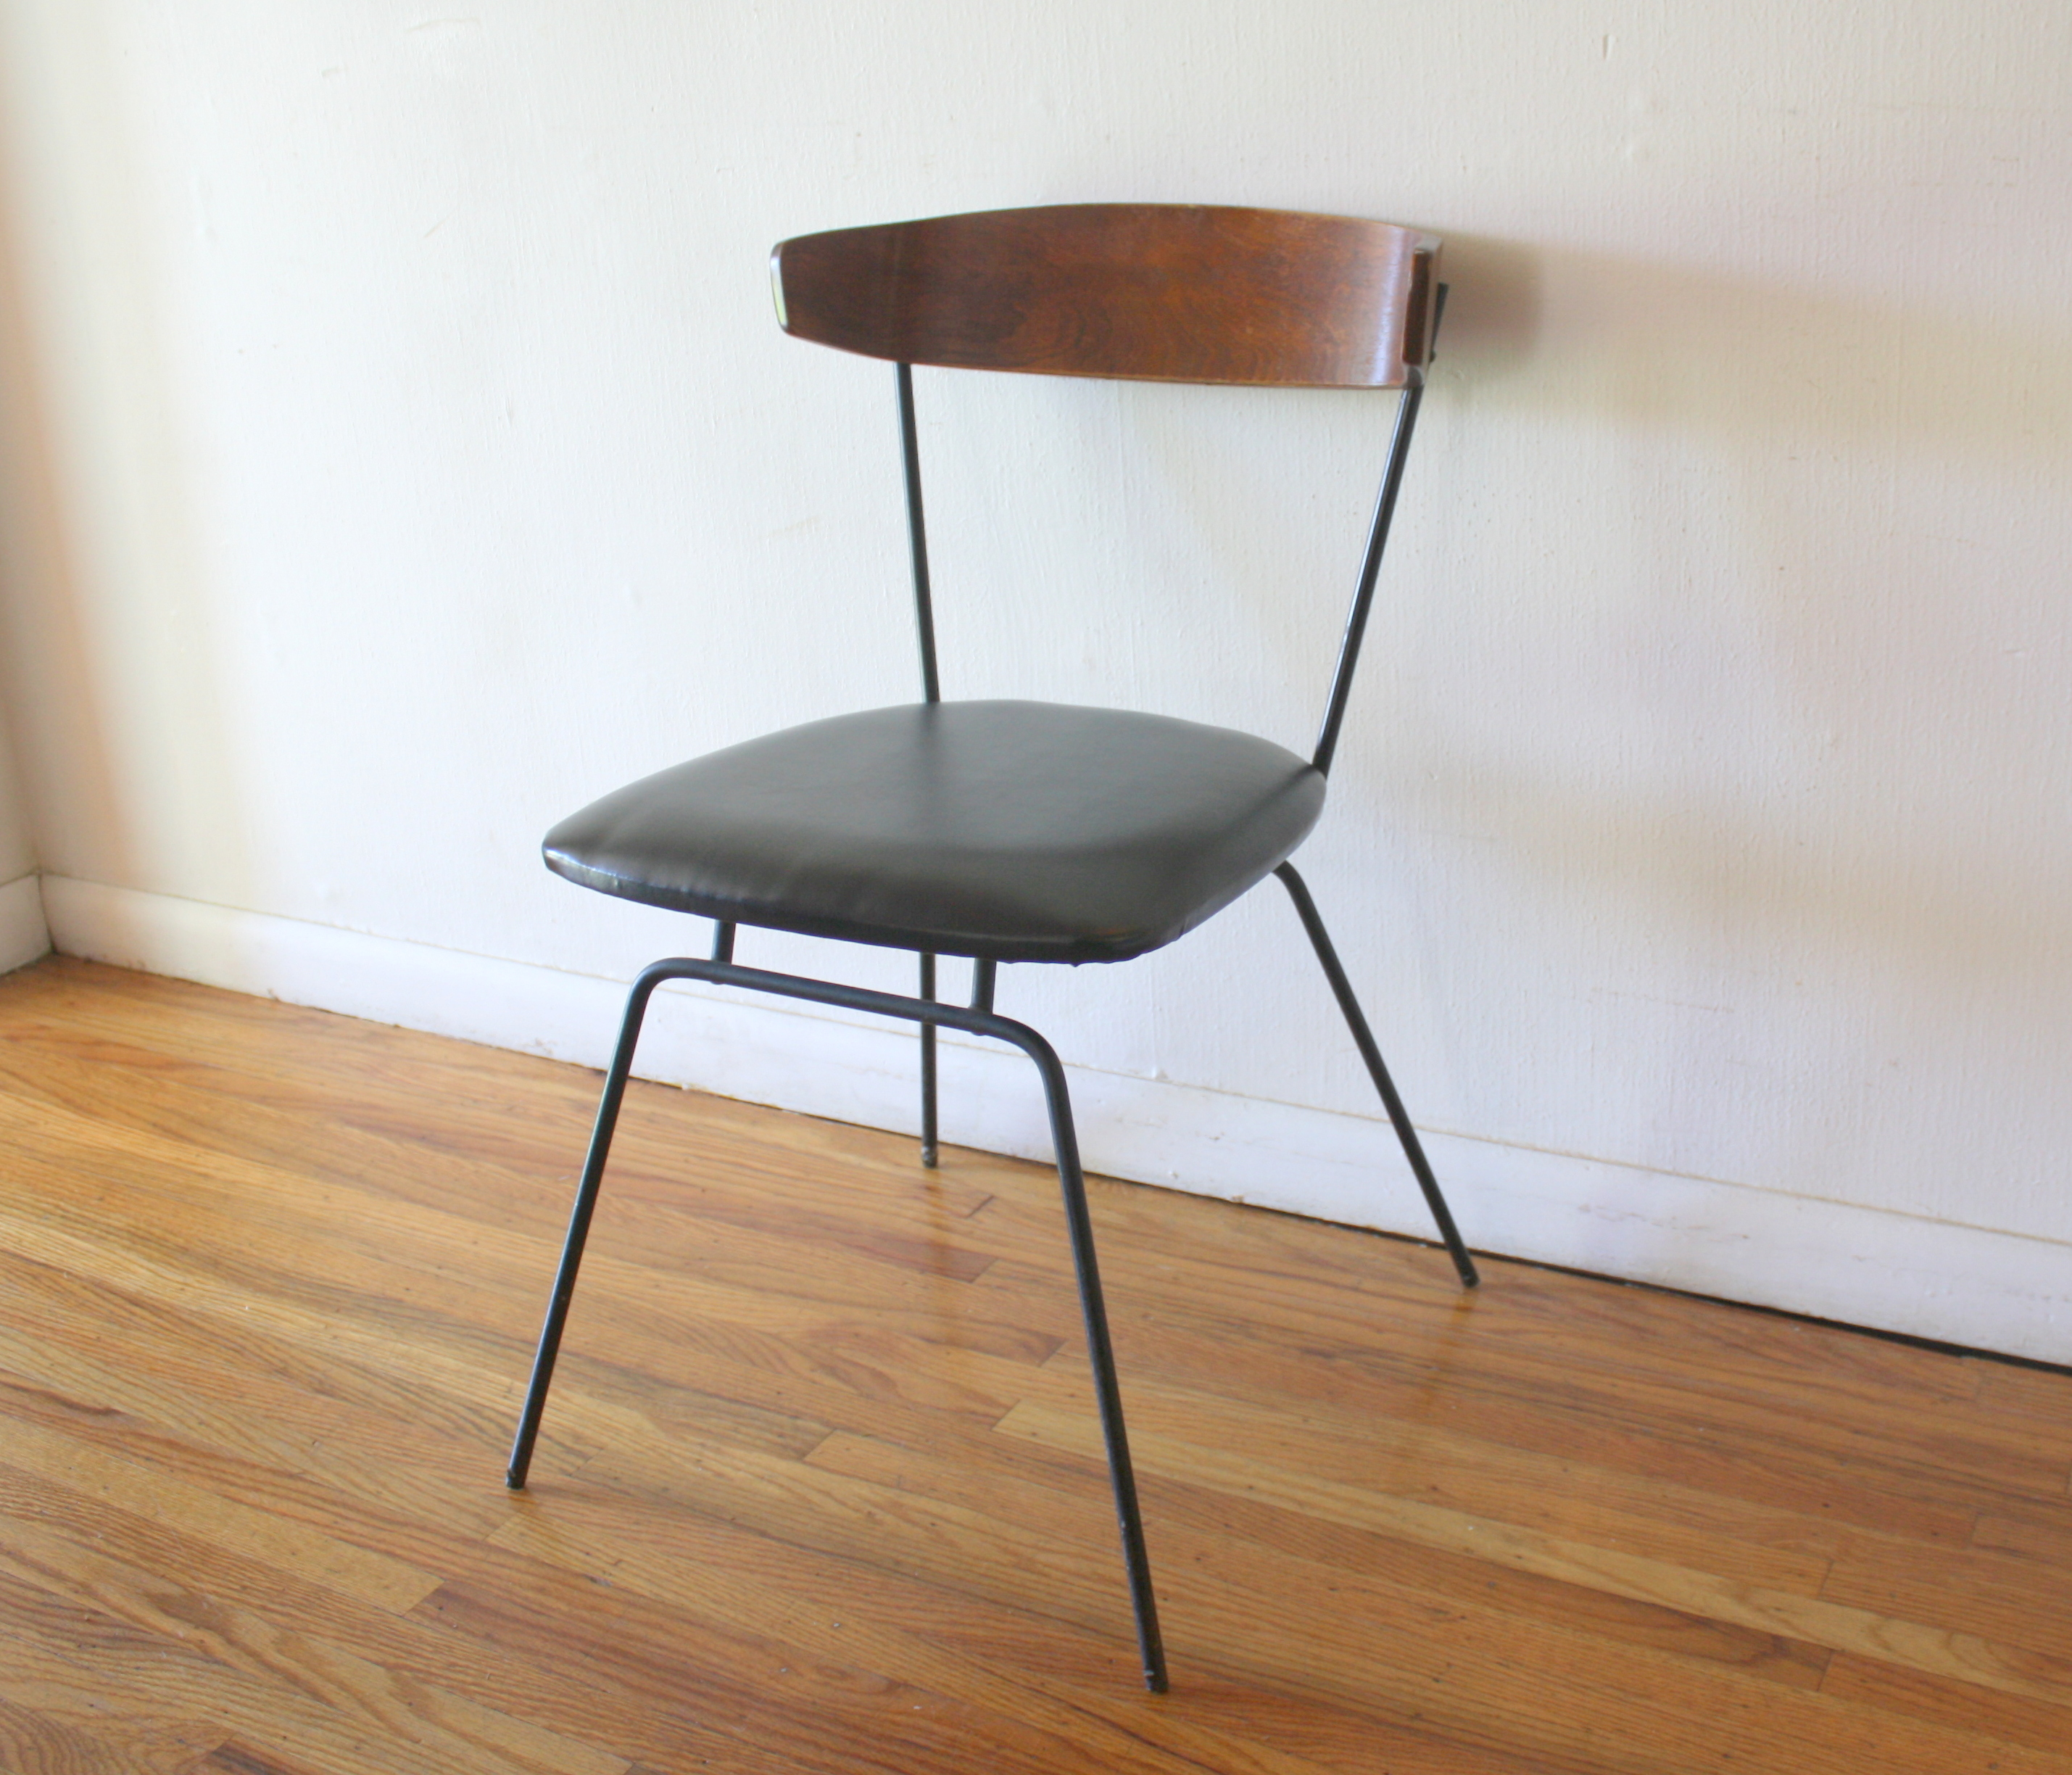 dining chair styles antique wishbone chairs mid century modern by paul mccobb | picked vintage